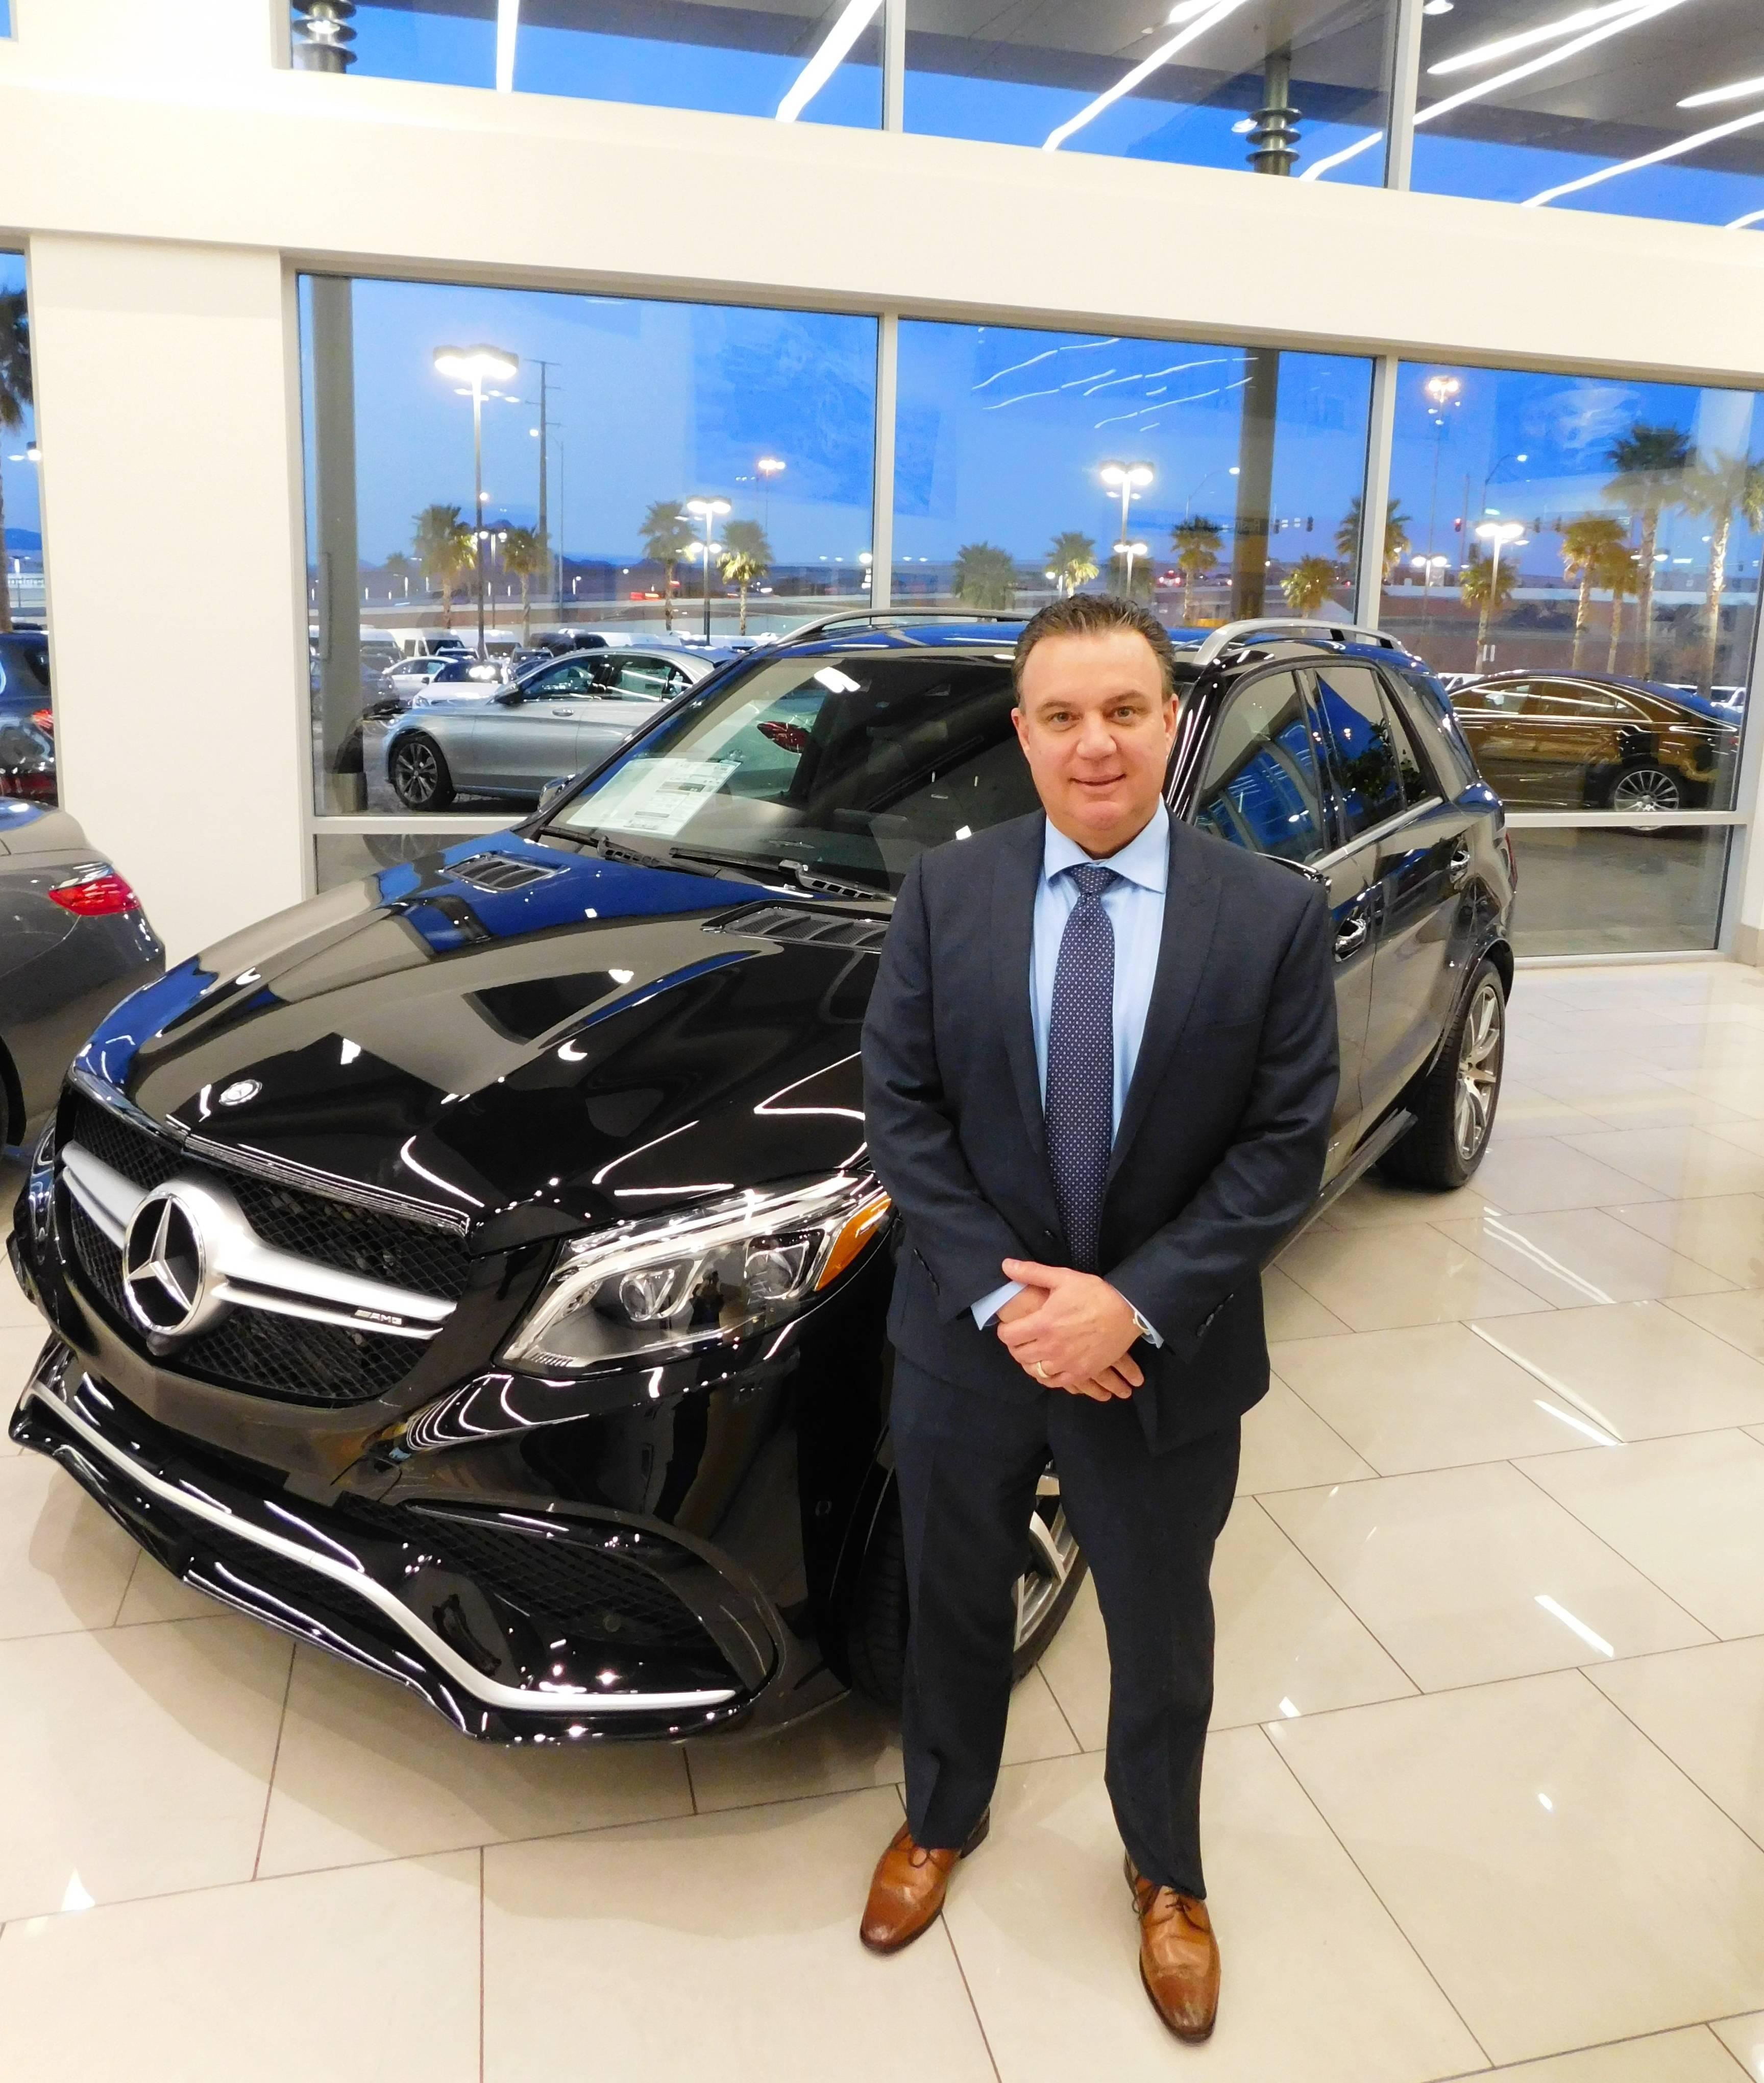 mercedes-benz of henderson national employee appreciation day